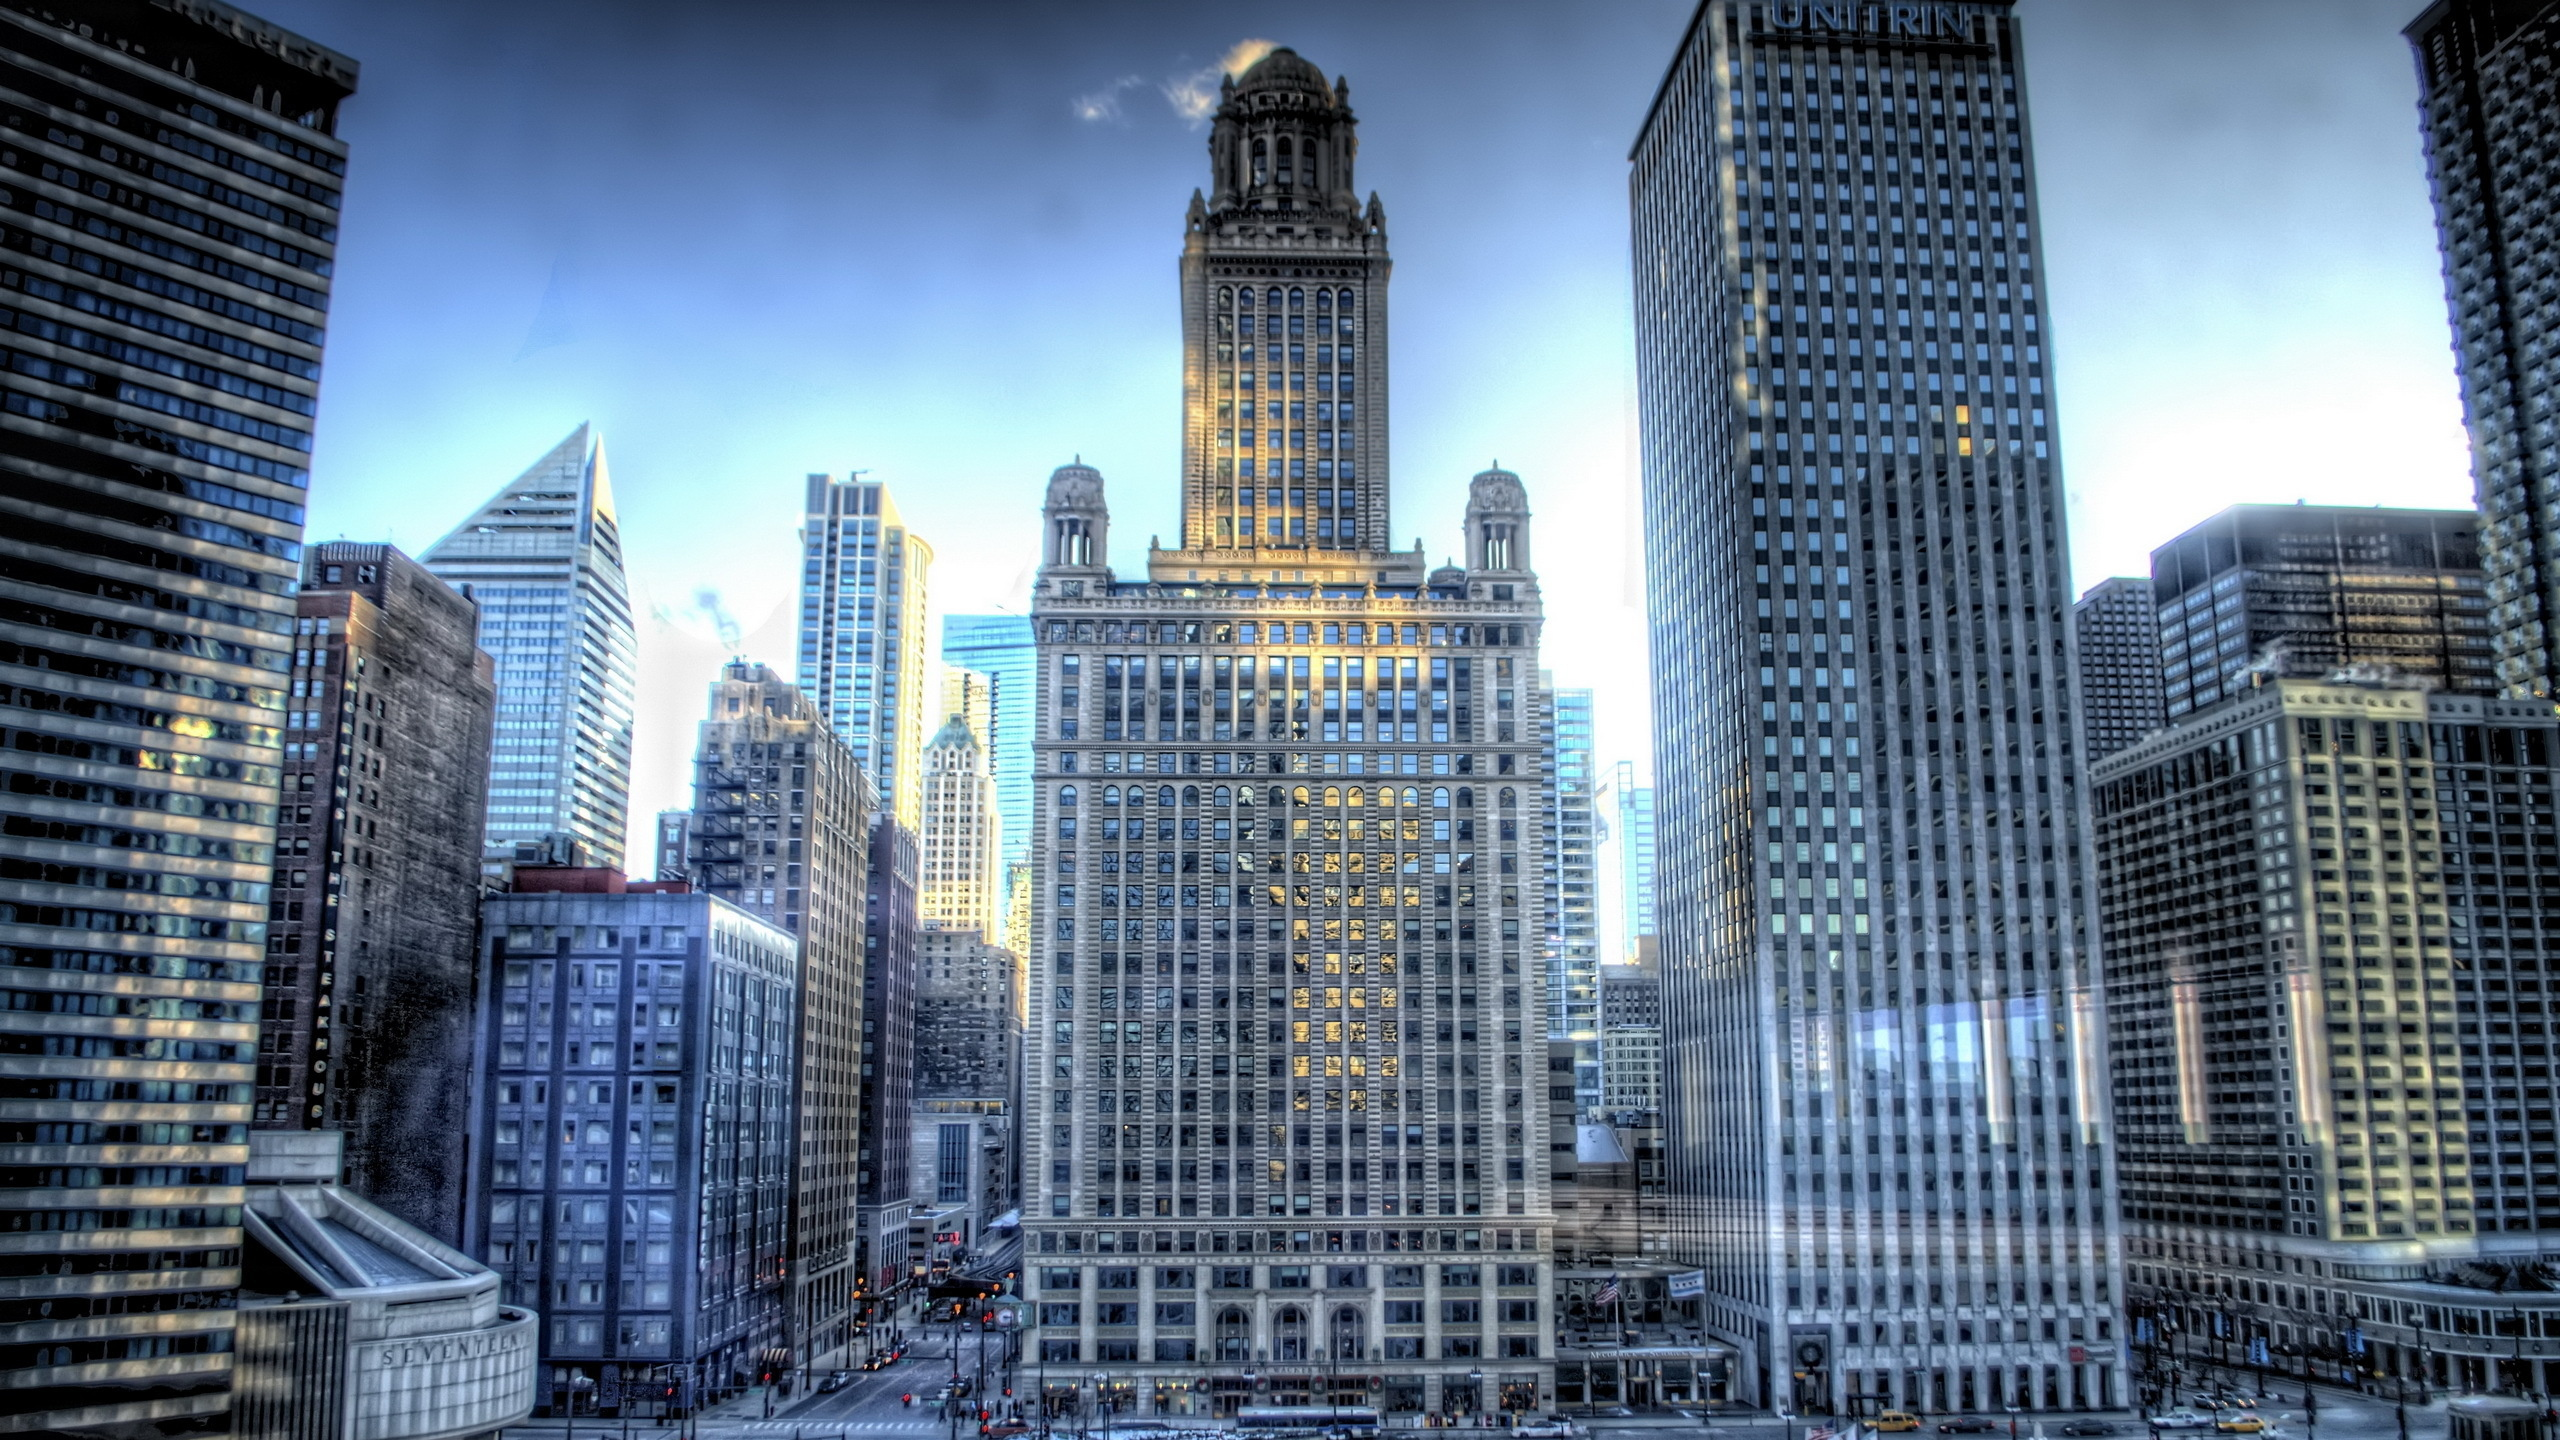 Usa Illinois Chicago Buildings Skysrapers High Resolution 2560x1440